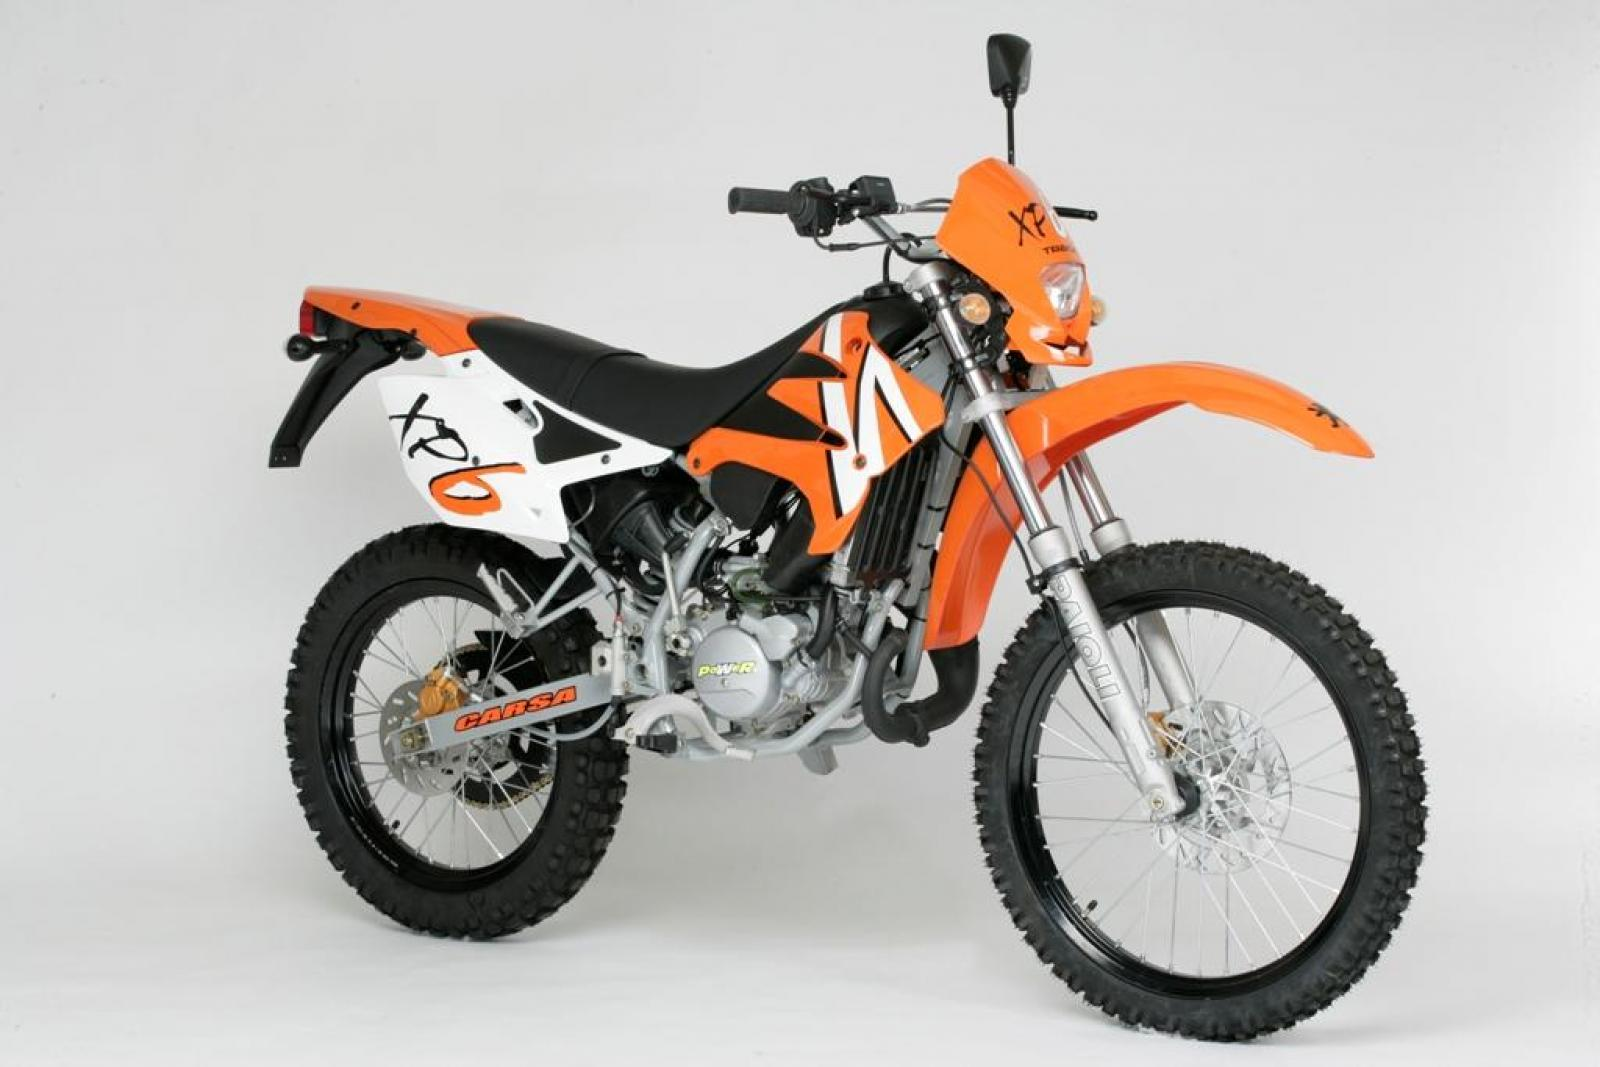 Peugeot XP6 50 Supermotard 2006 images #120124